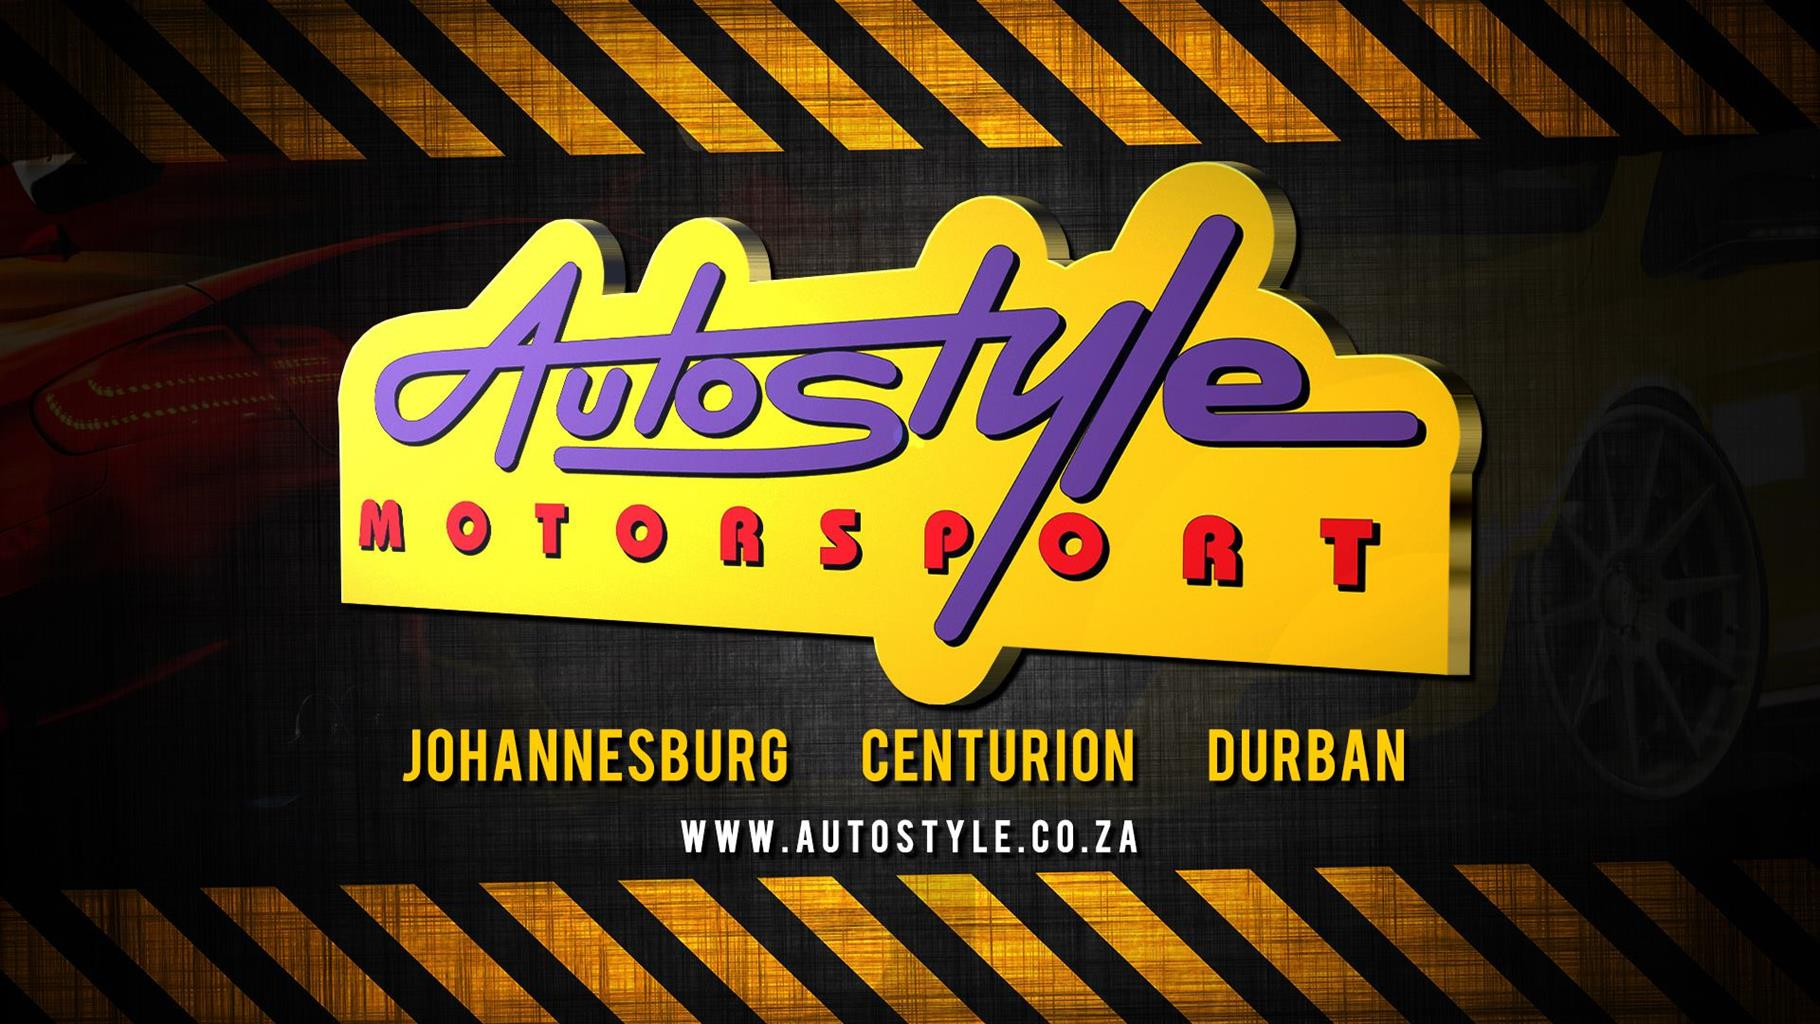 Find Autostyle Motorsport's adverts listed on Junk Mail